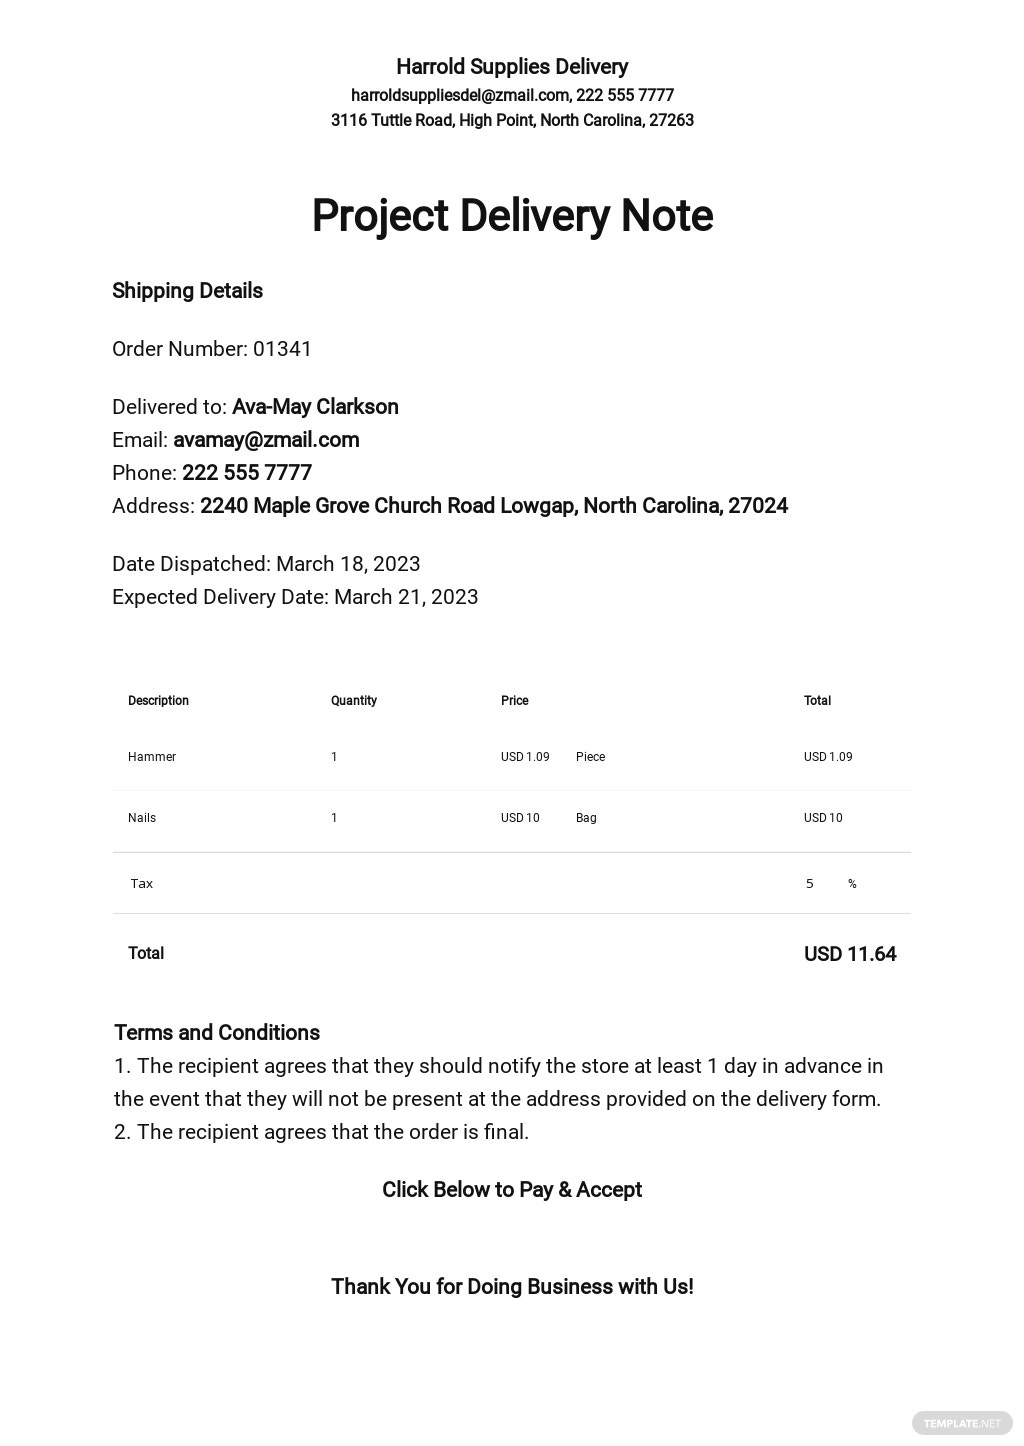 Project Delivery Note Template.jpe